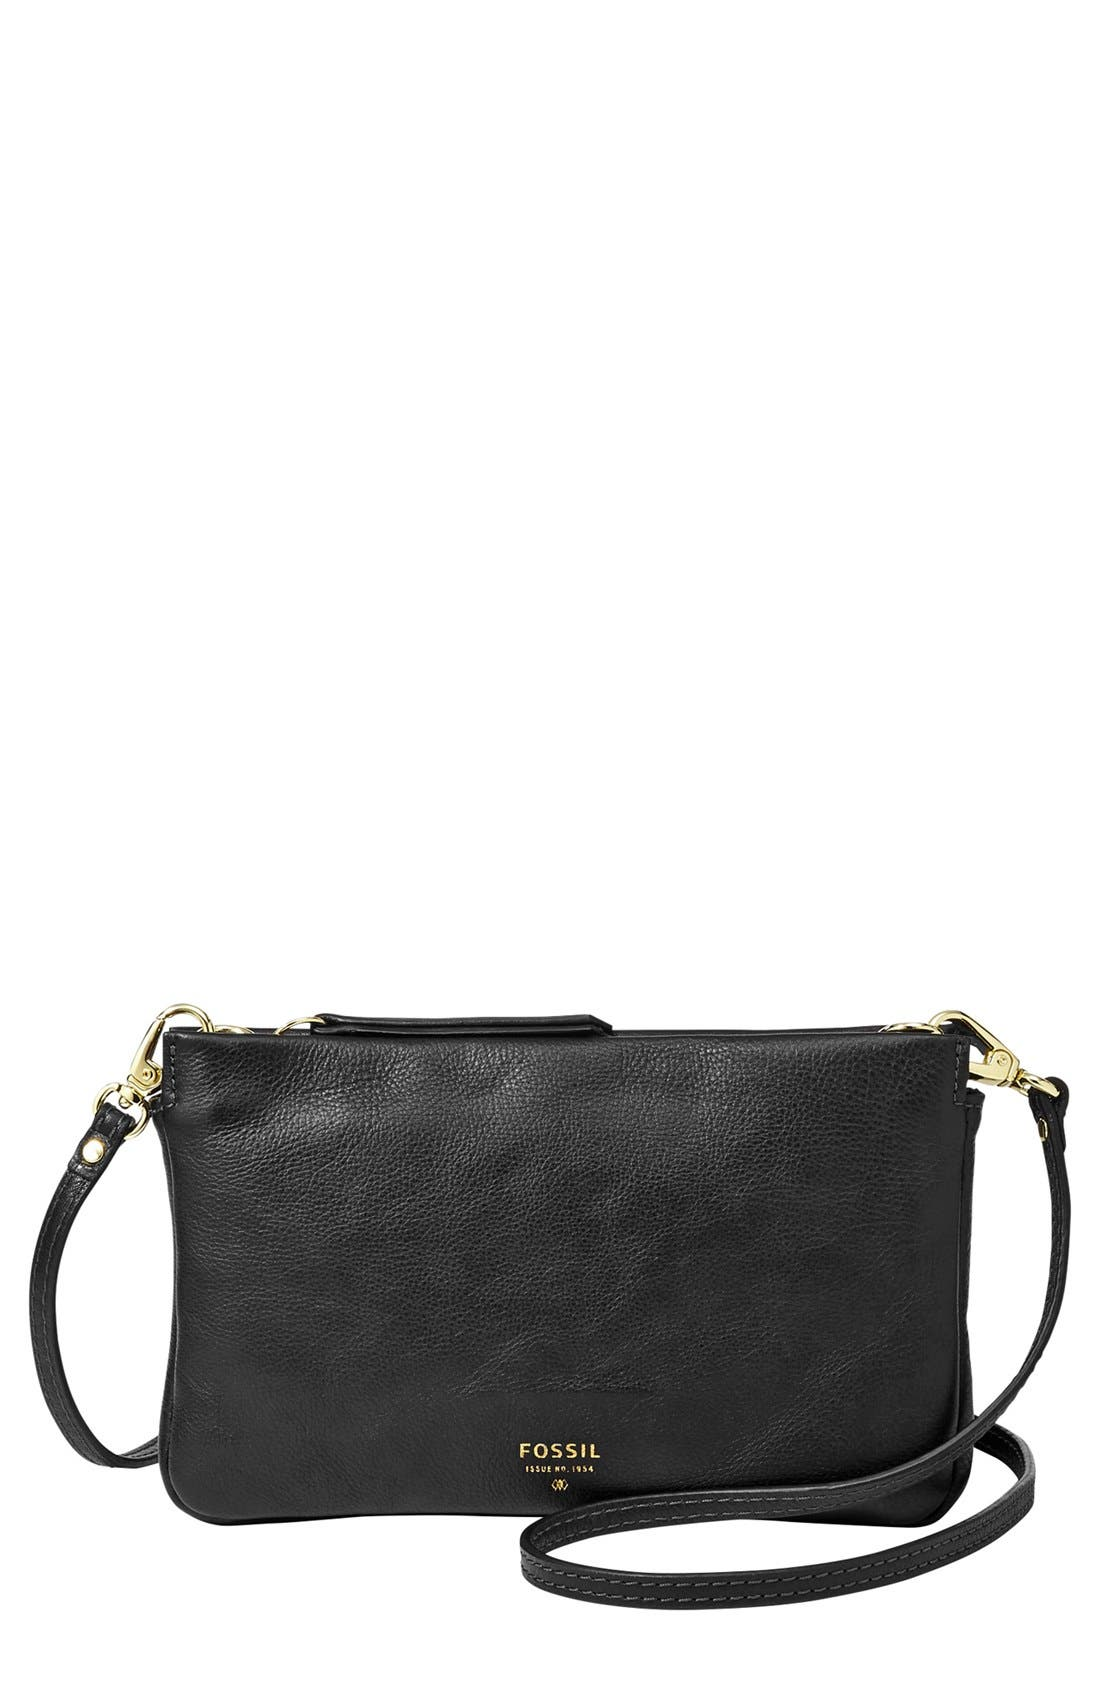 'Mini' Crossbody Bag,                         Main,                         color,